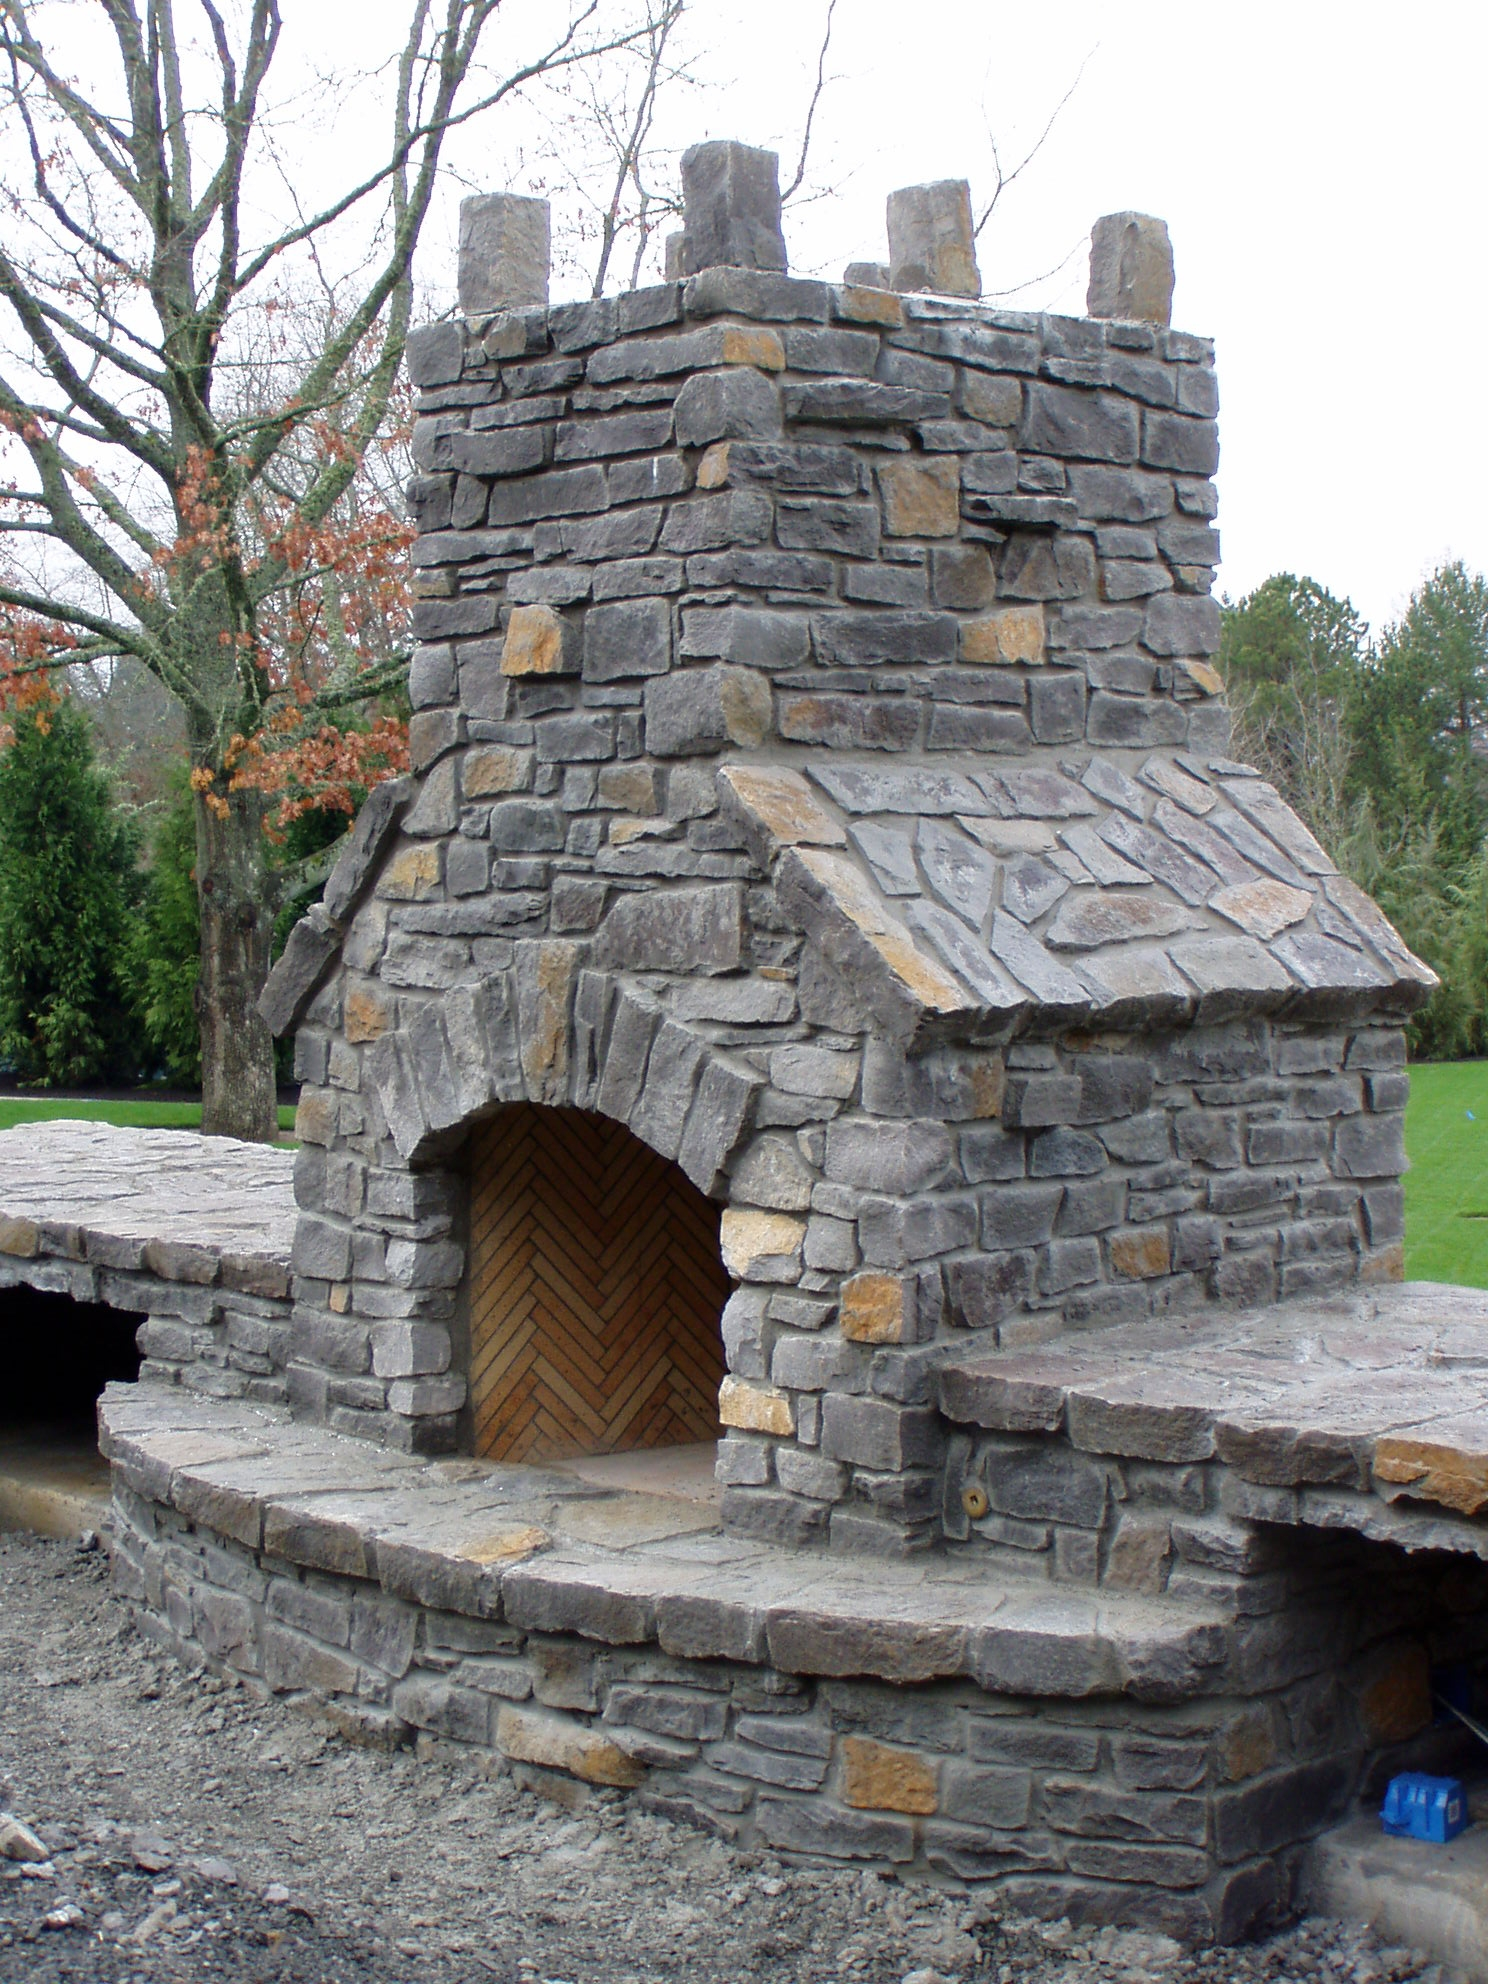 Stone Outdoor Fireplaces | Brick Outdoor Fireplaces ... on Simple Outdoor Brick Fireplace id=69230